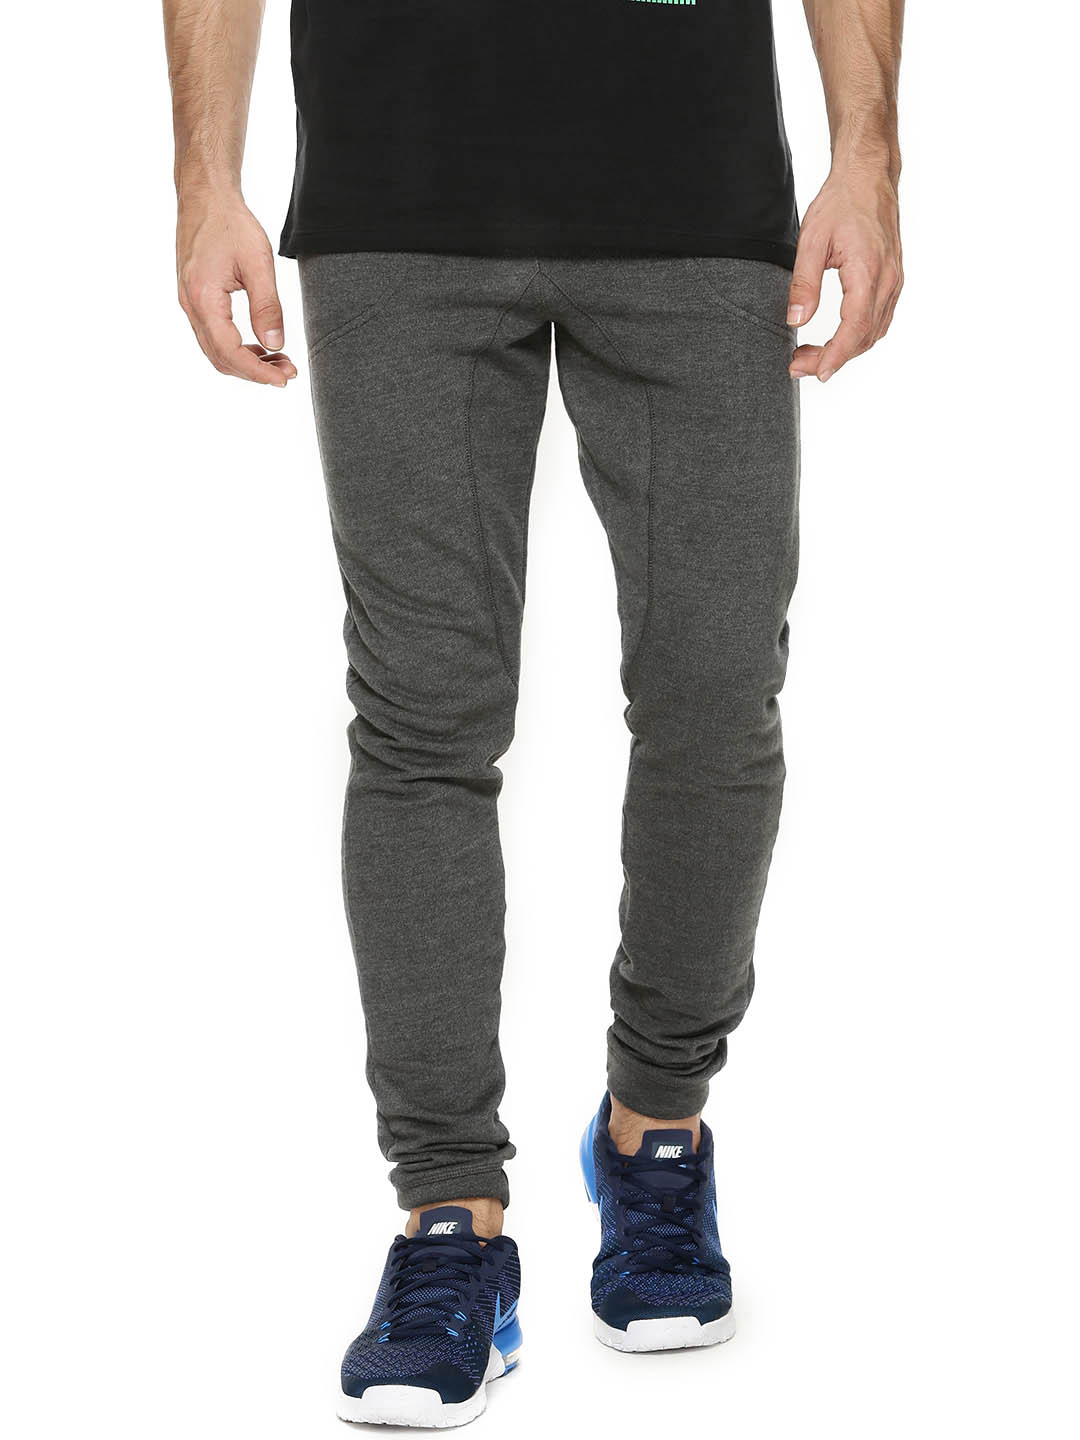 Breakbounce ANTHRA MELANGE/BLACK Cuffed Joggers With Cut & Sew 1